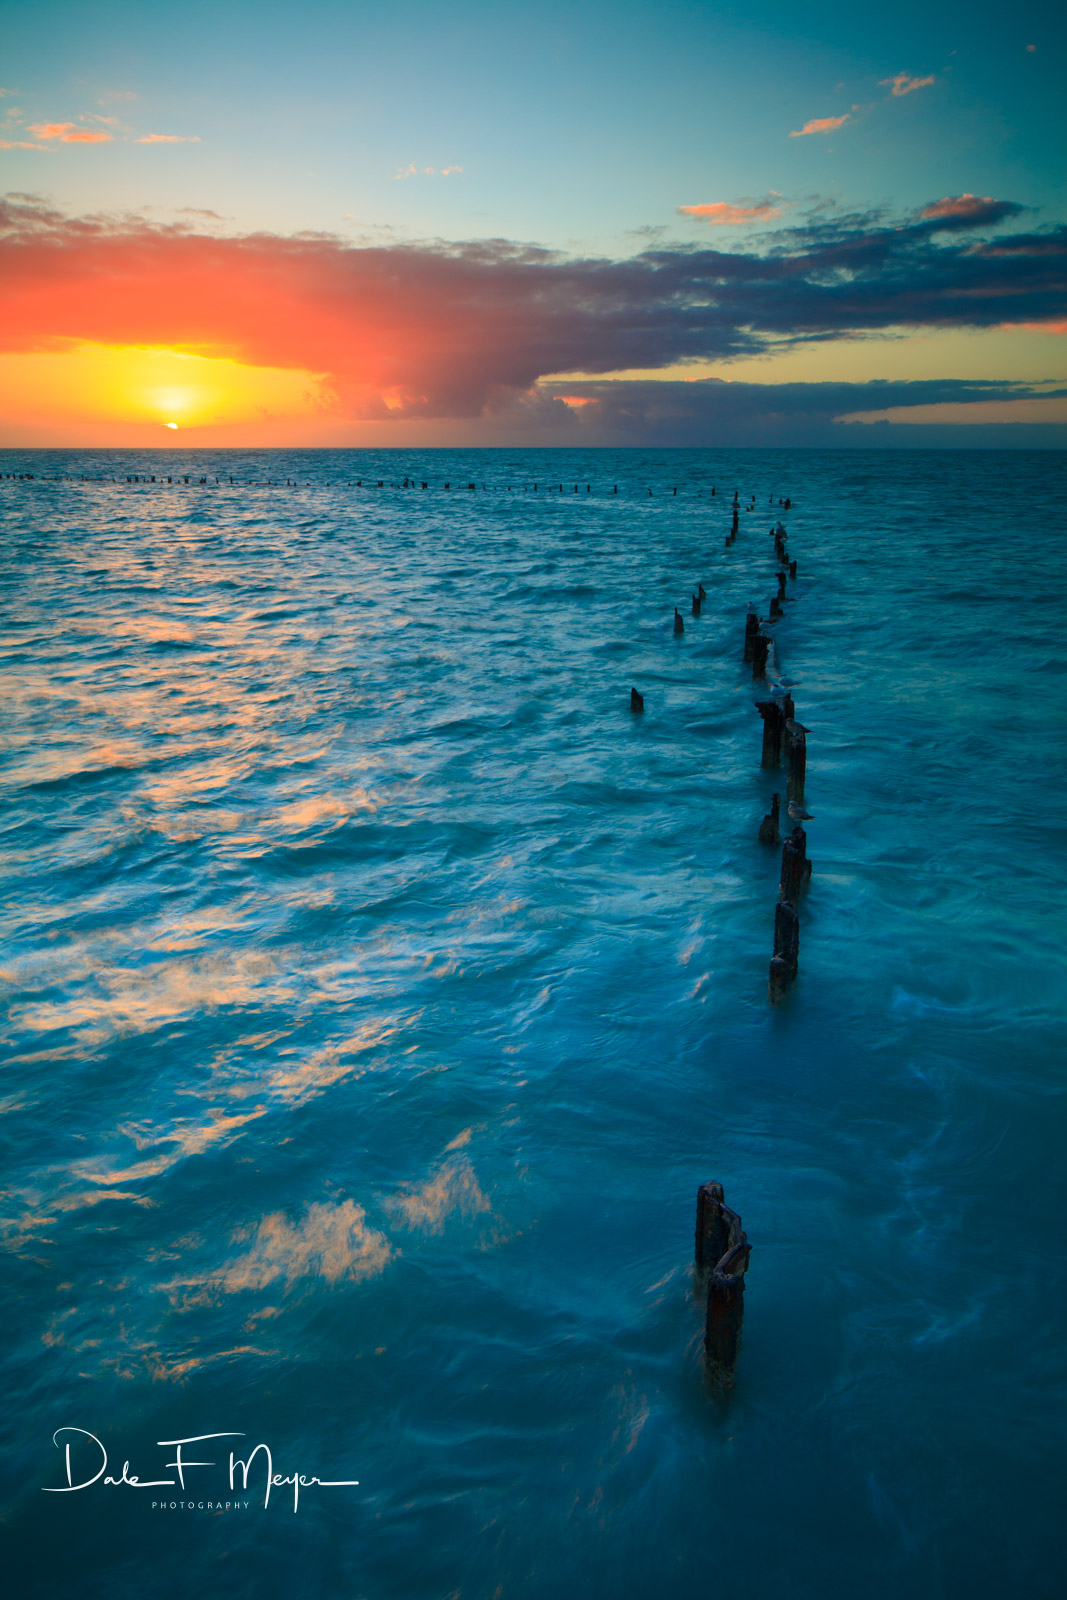 higgs beach,key west,ocean,piers,sunrise, photo